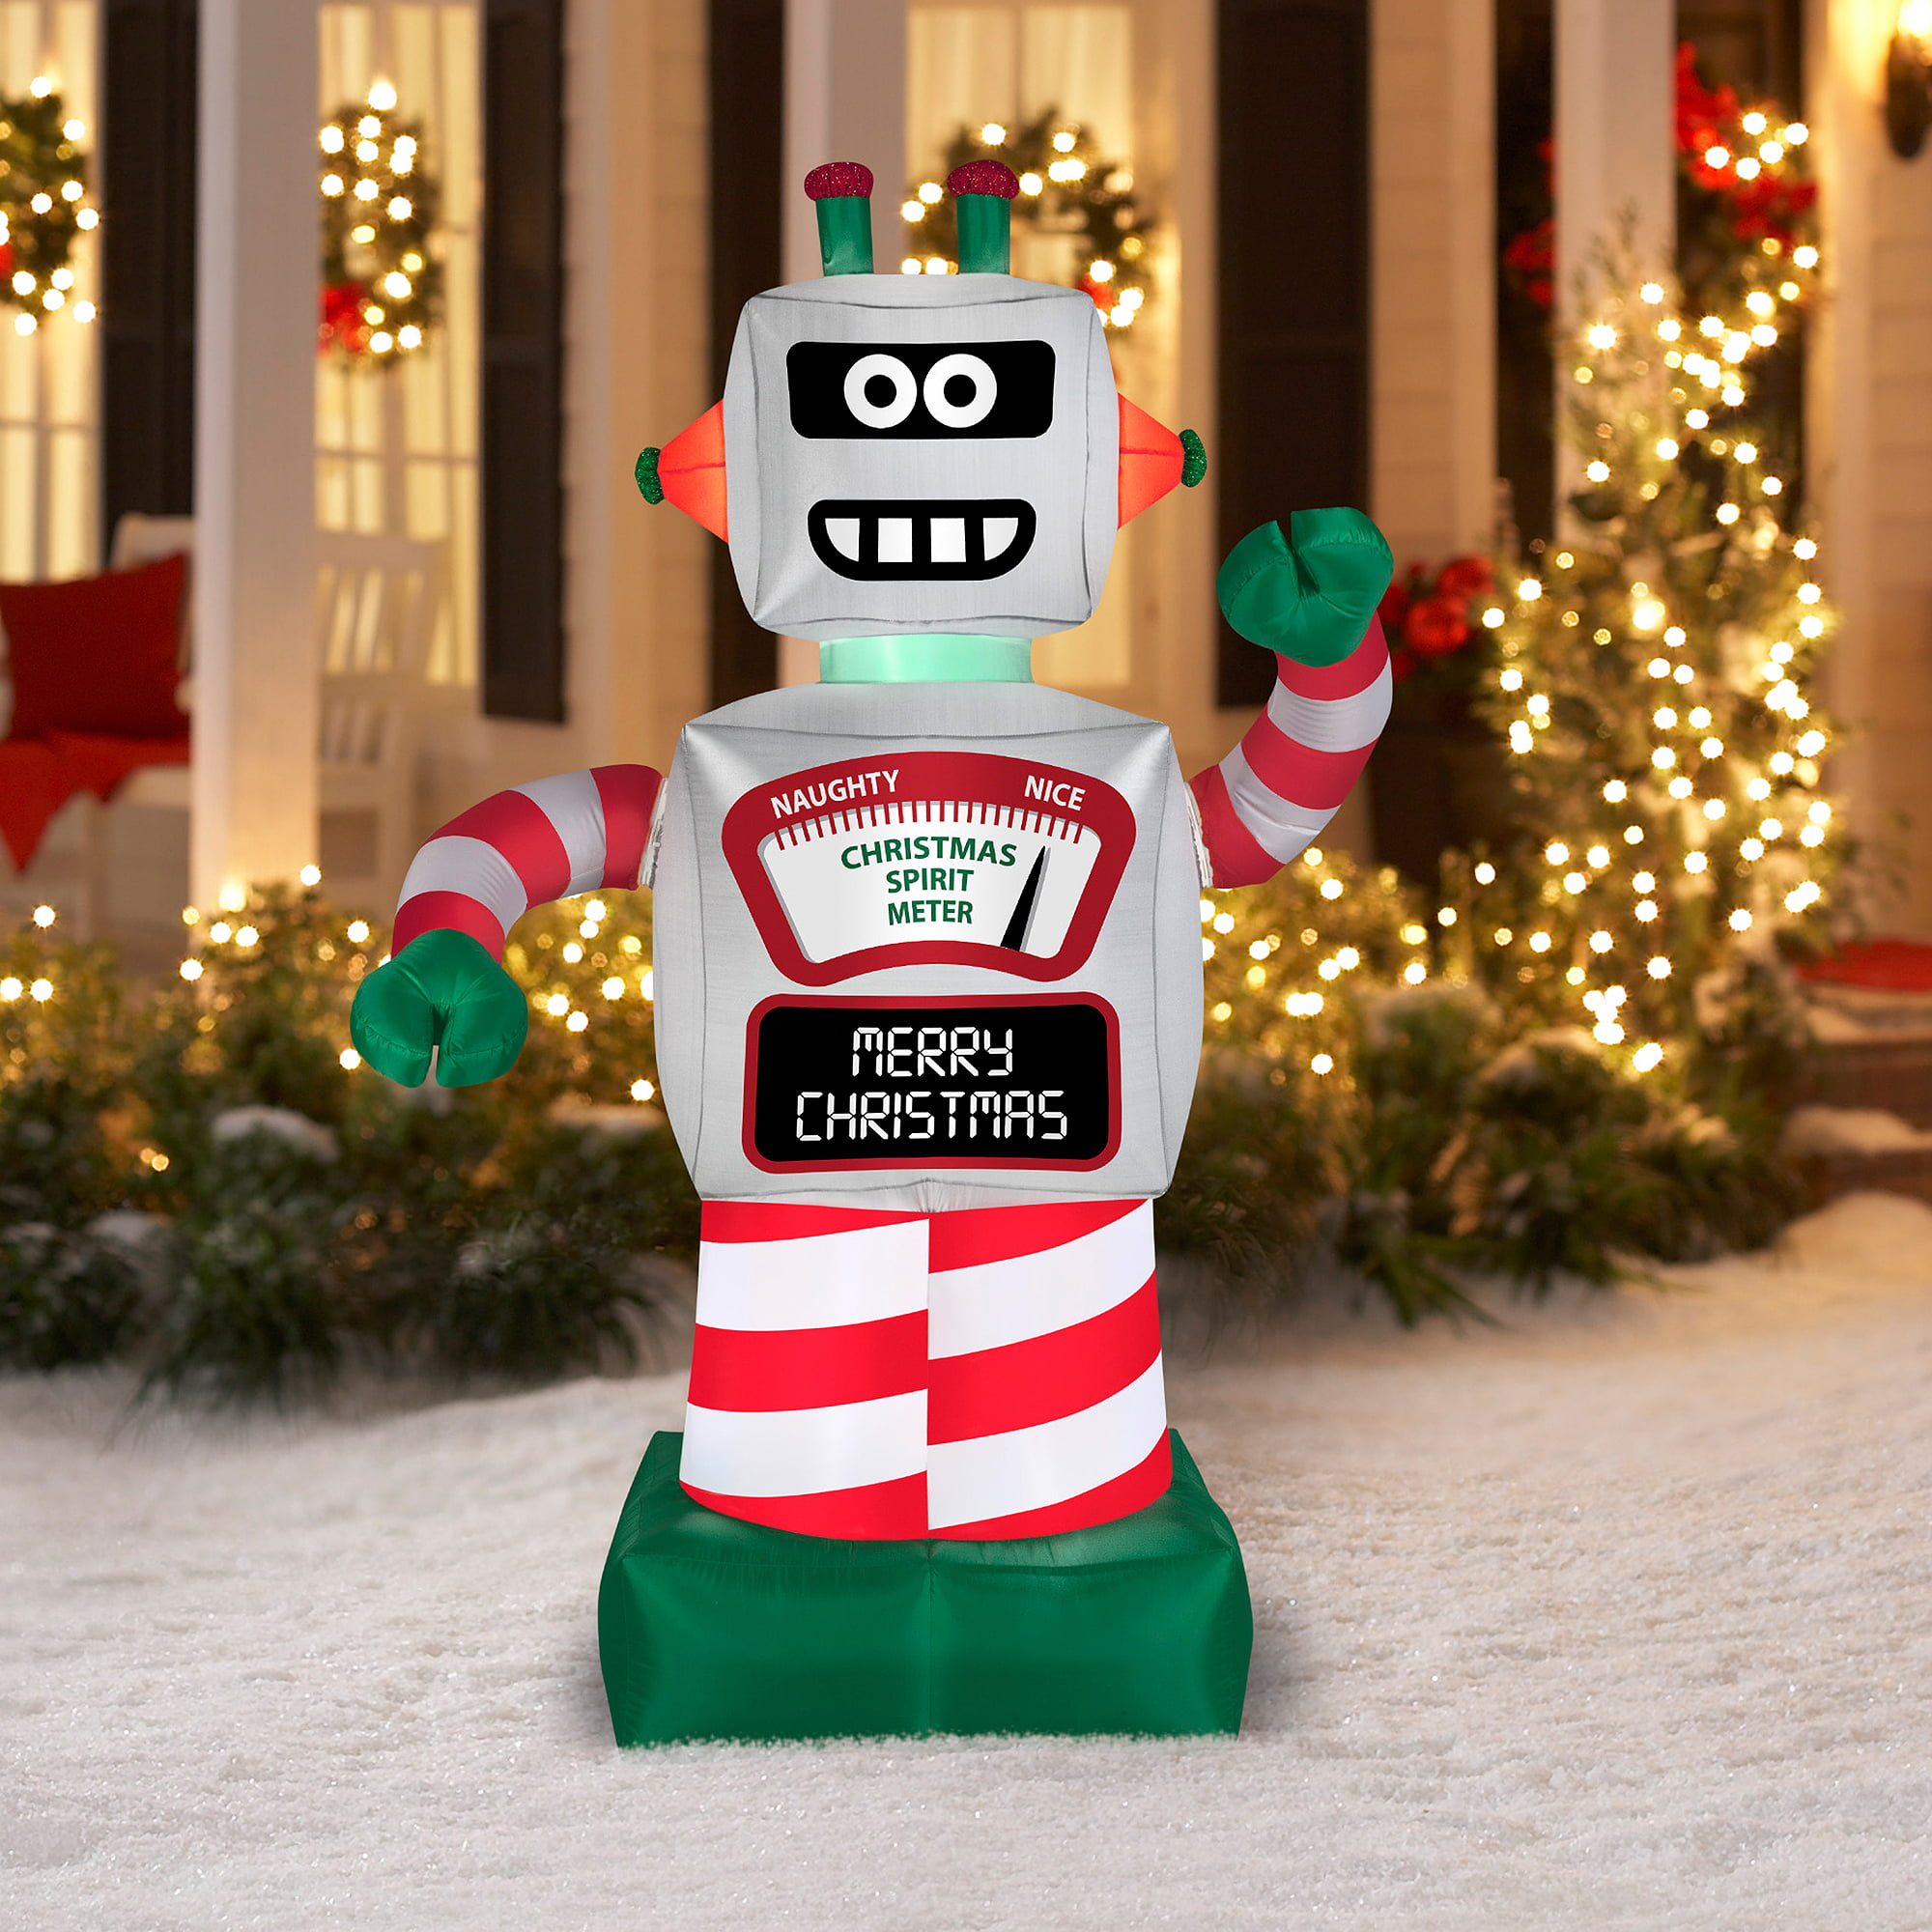 6 animated robot airblown inflatable christmas prop walmartcom - Walmart Inflatable Christmas Decorations